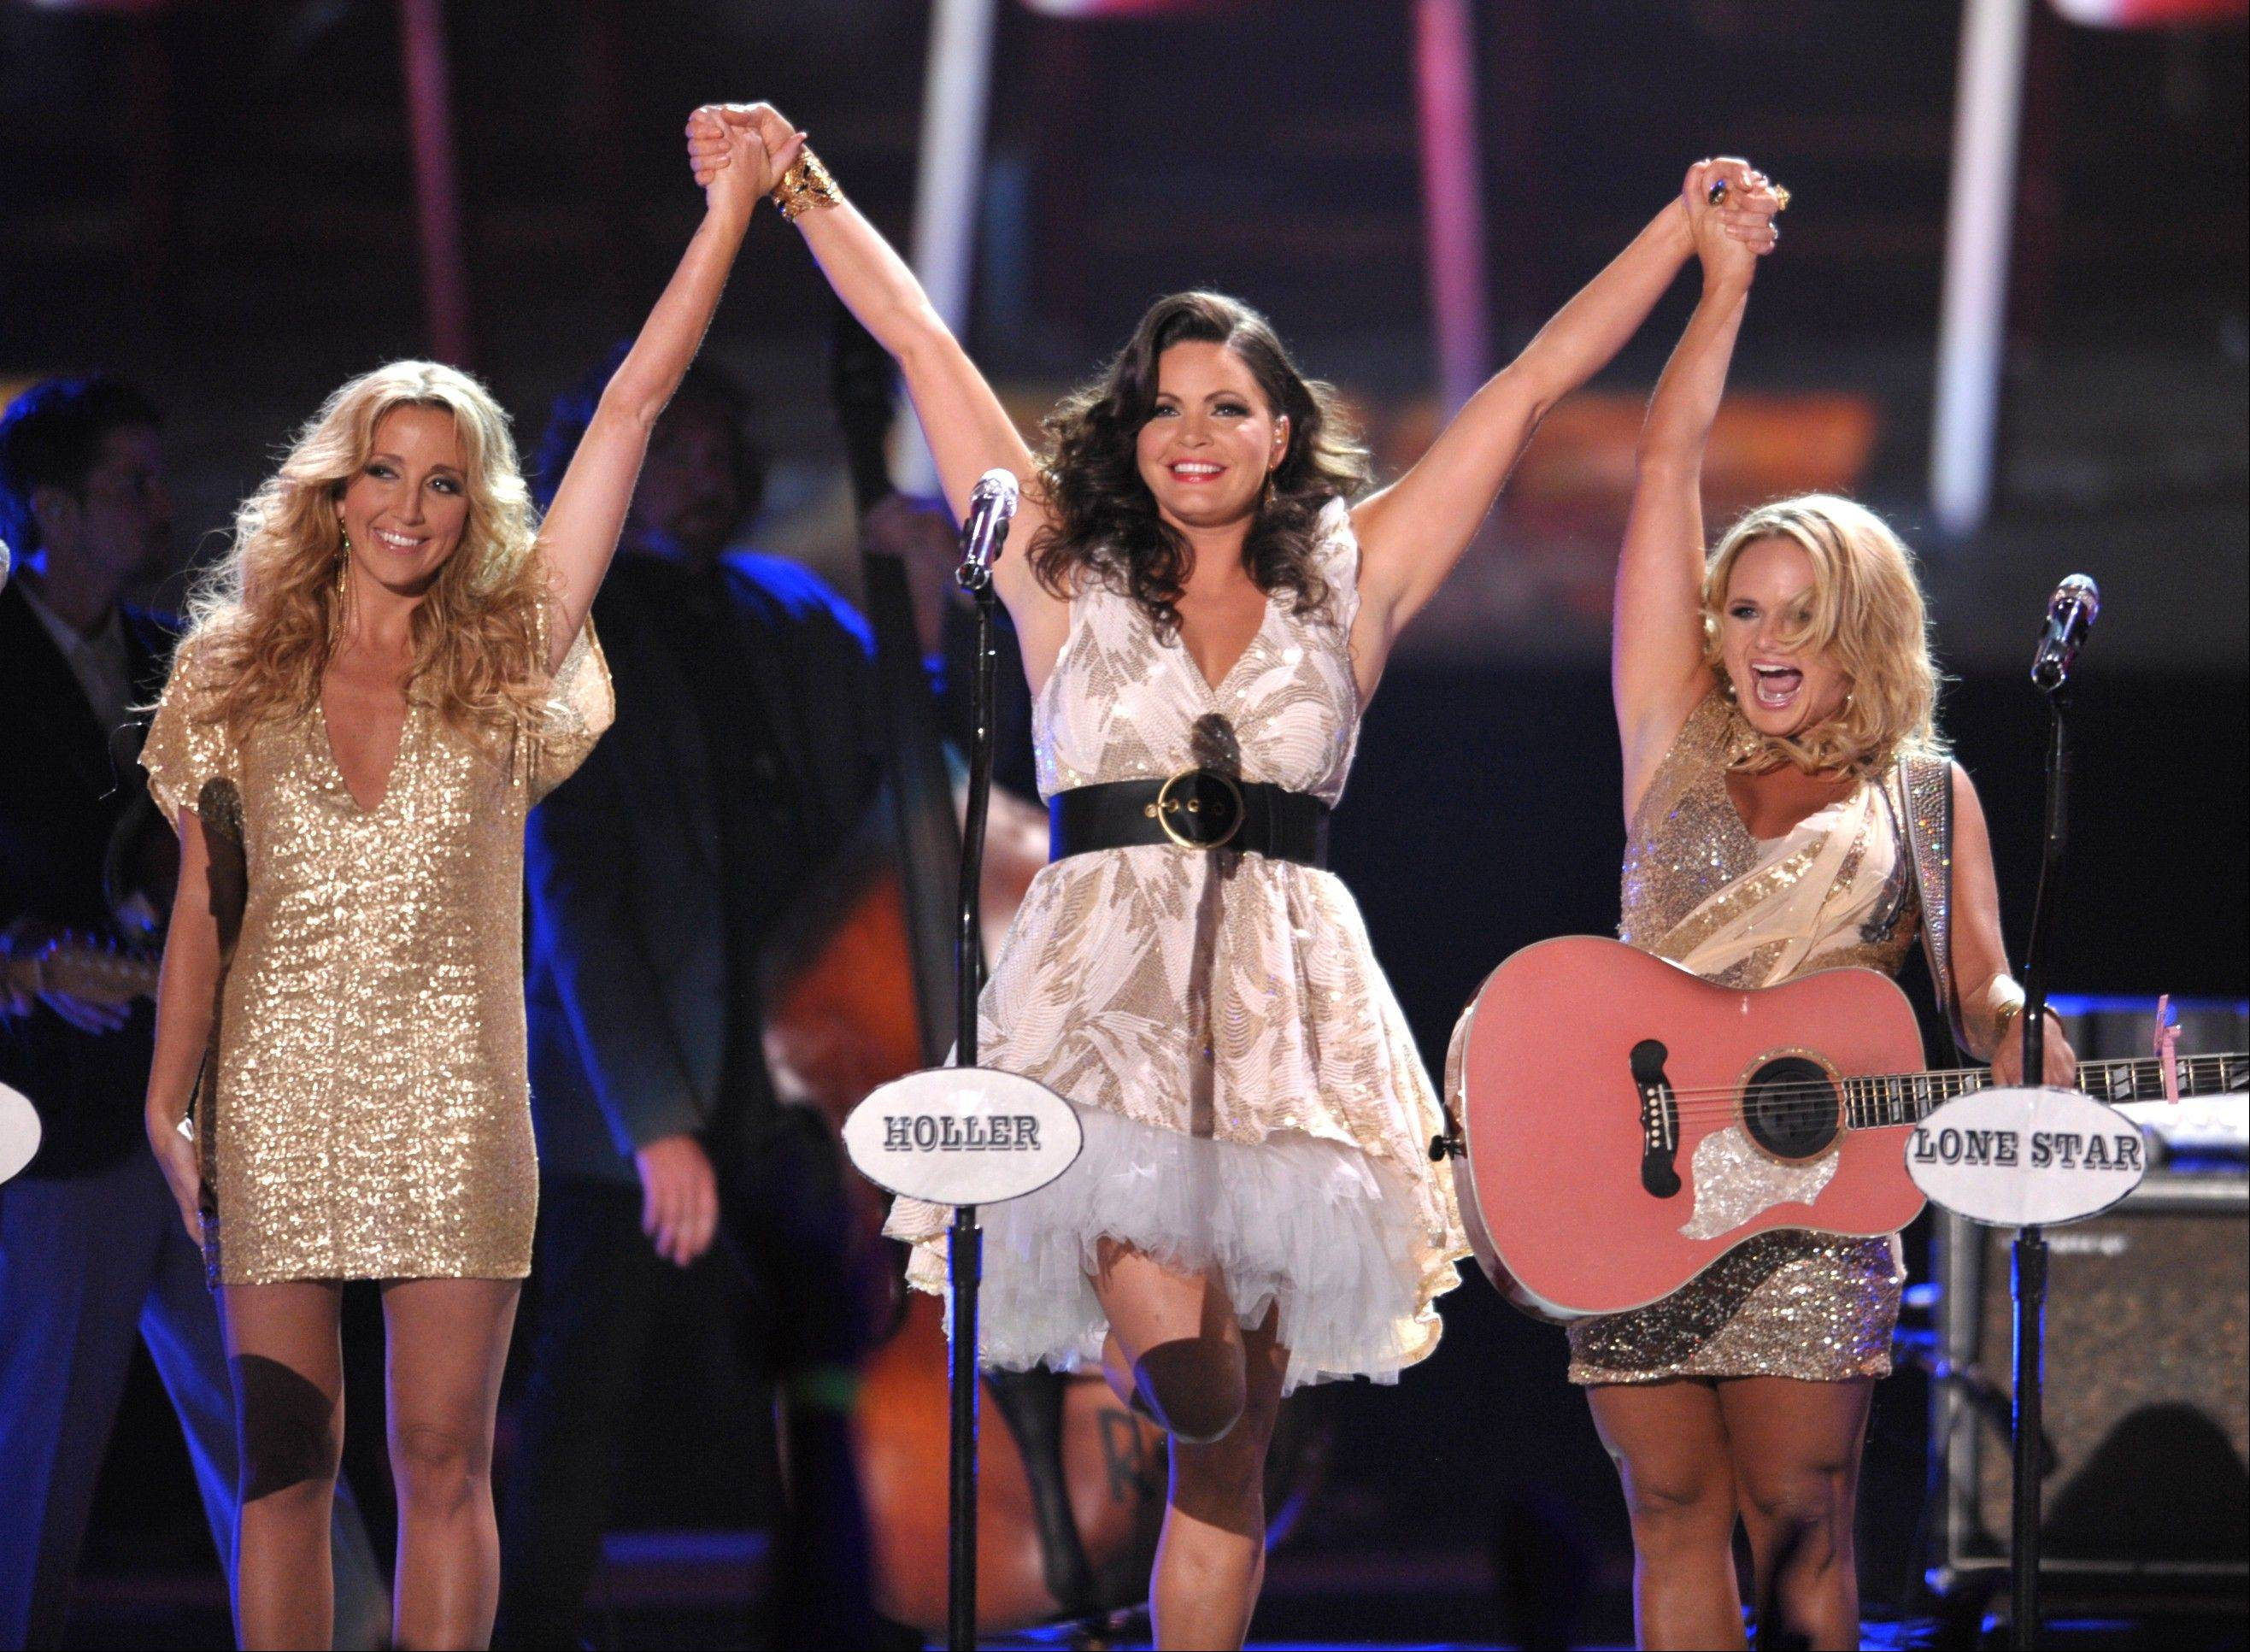 From left, Ashley Monroe, Angaleena Presley and Miranda Lambert of Pistol Annies perform at the 2012 CMT Music Awards on Wednesday, June 6, 2012 in Nashville, Tenn.